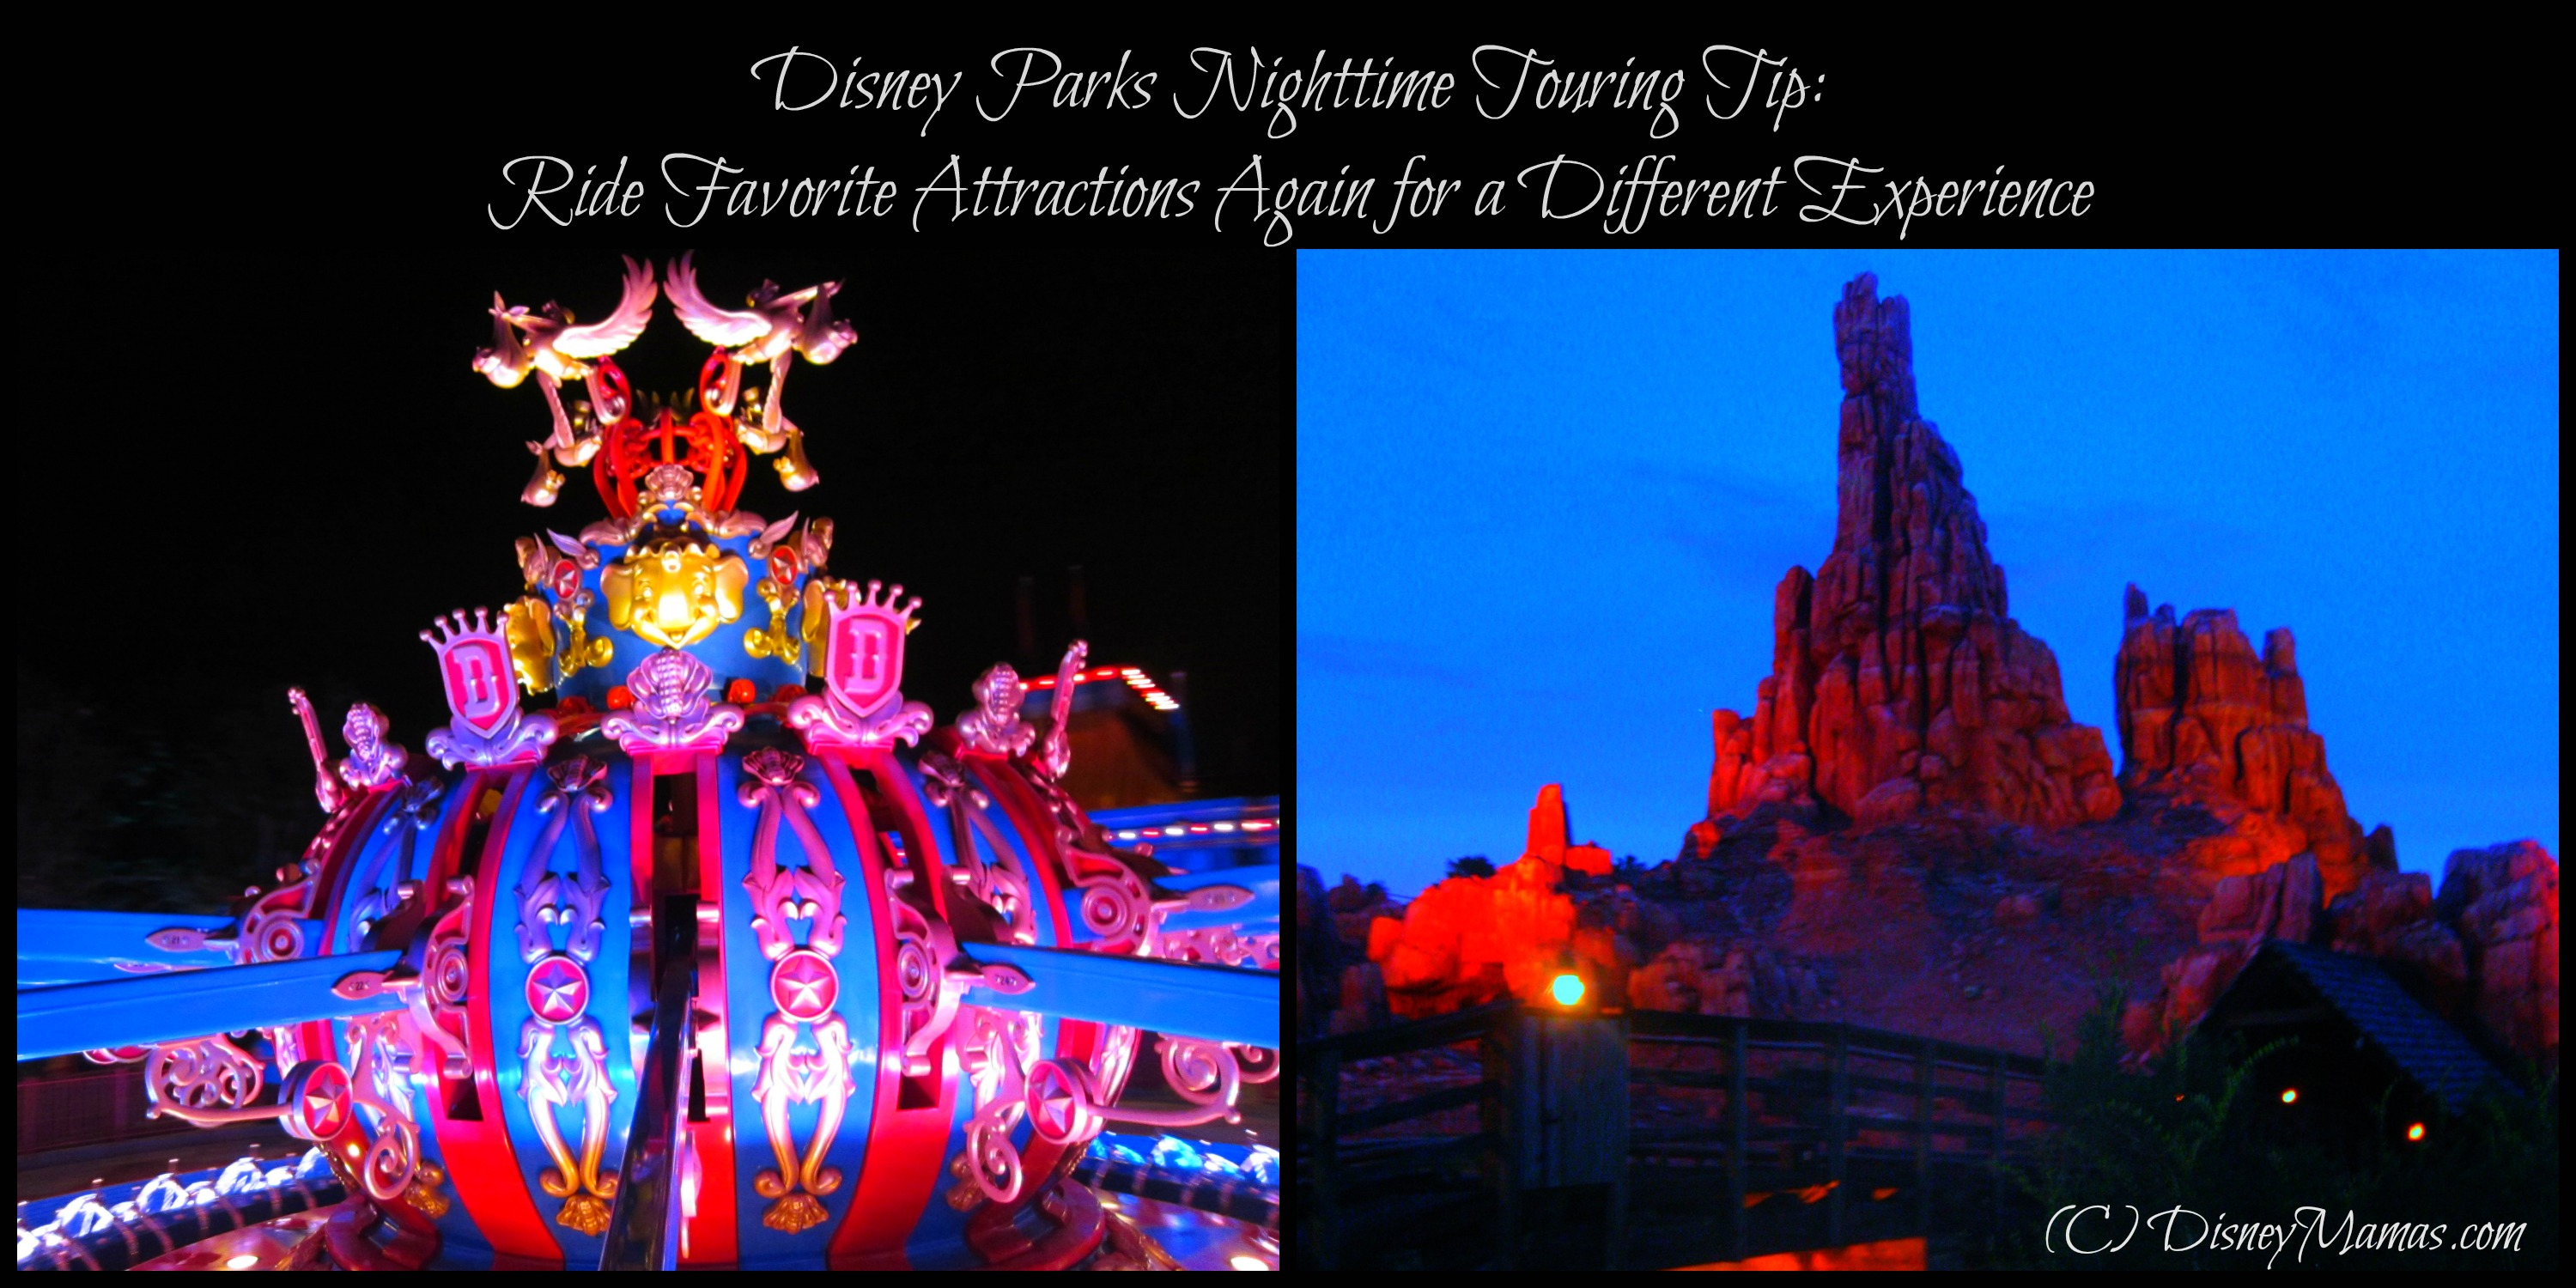 Disney Parks Nighttime Touring Tip: Ride Favorite Attractions Again for a Different Experience